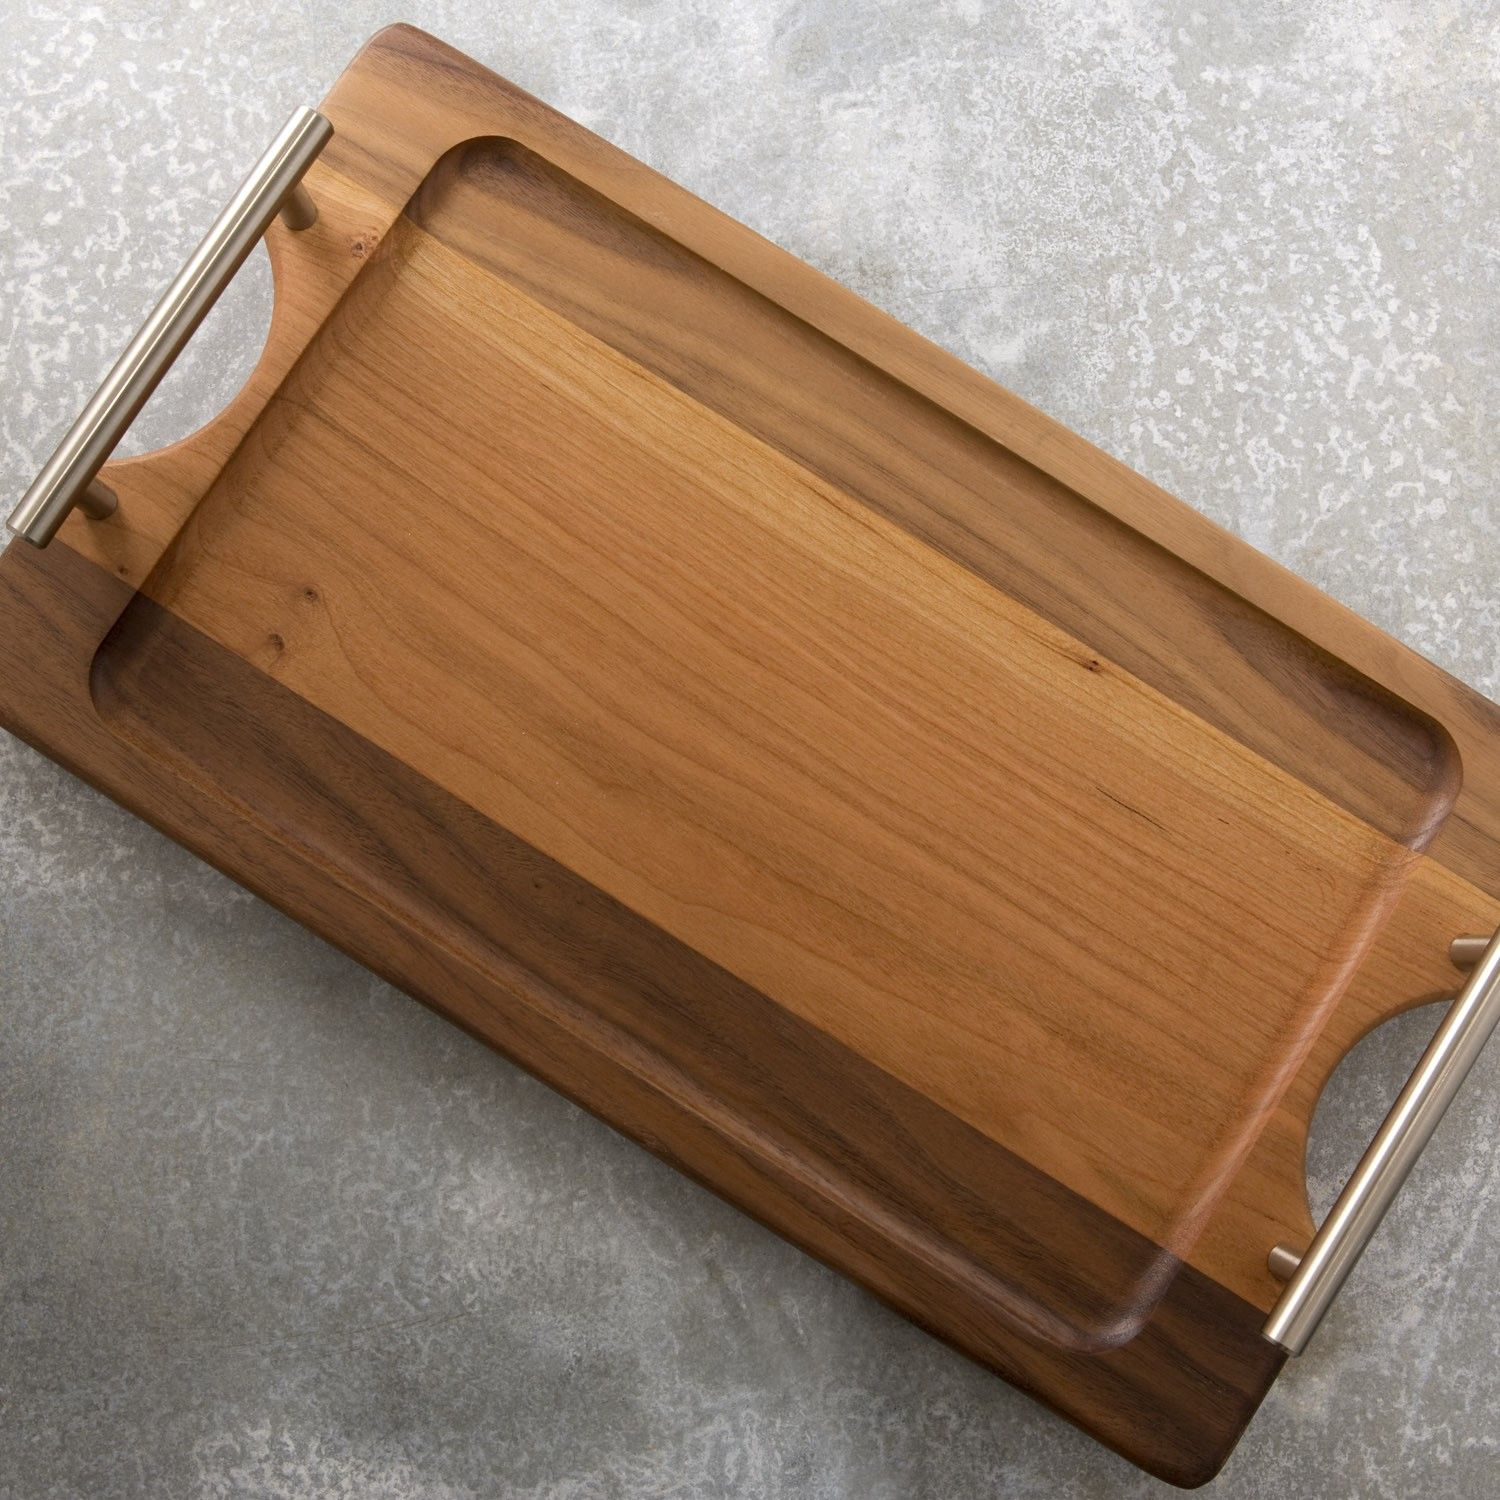 Uncategorized Handmade Wooden Trays murrays cheese vermont handmade wood tray boards tools gifts